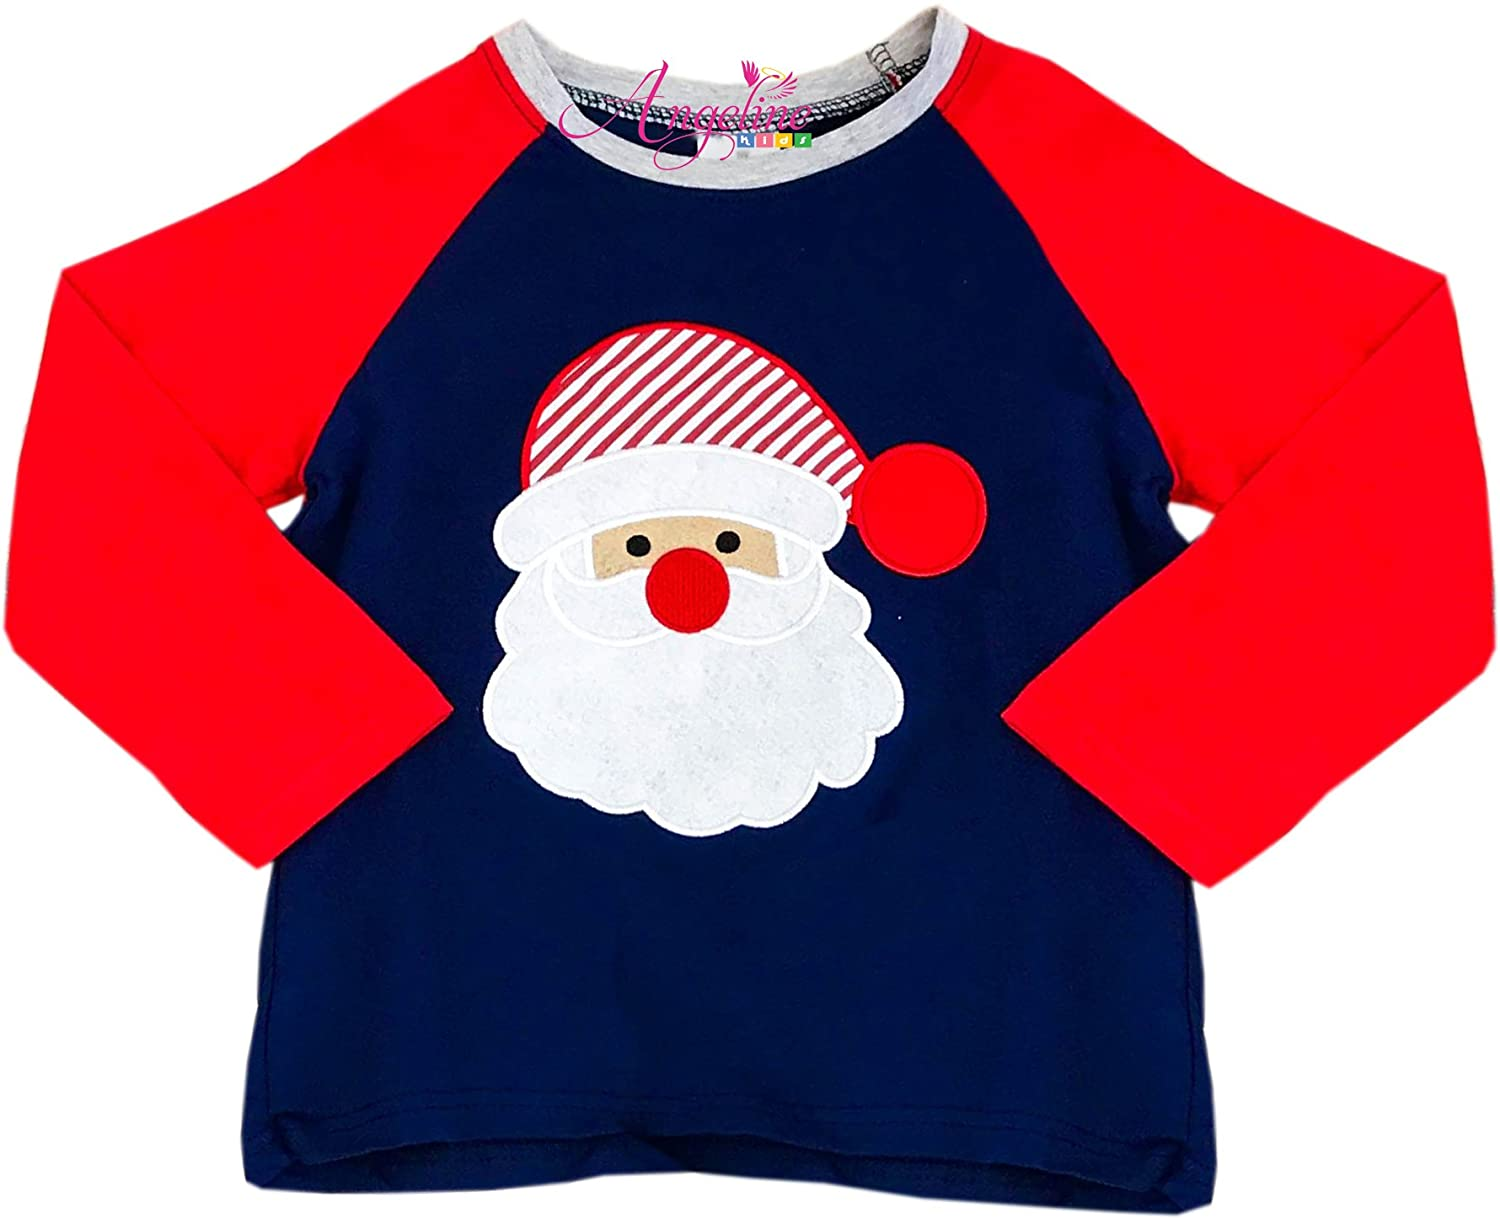 Angeline Boutique Clothing Baby Boys, Girls, Unisex Christmas Raglan T-Shirt Top CHRIST17-UNITEE